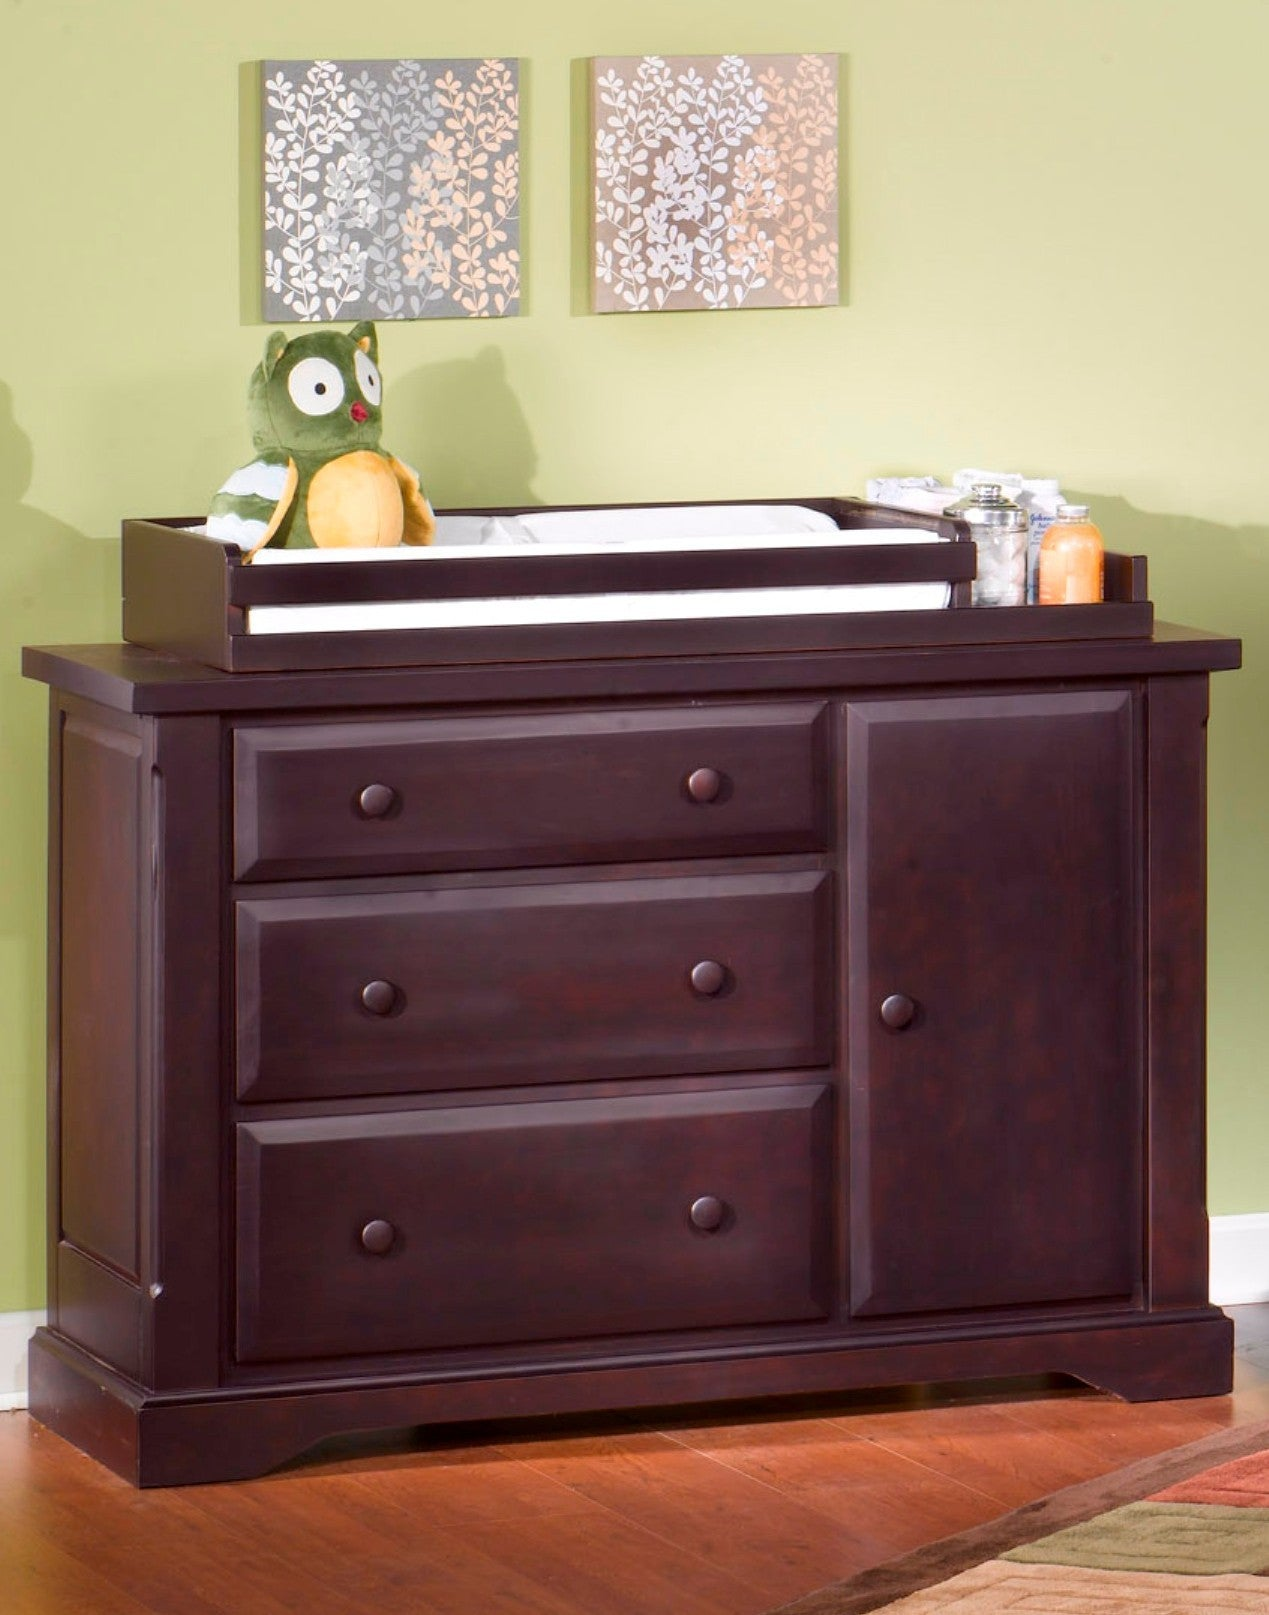 ... Child Craft Hawthorne Dressing Bureau Espresso   Child Craft Nursery  Furniture   Nurzery.com